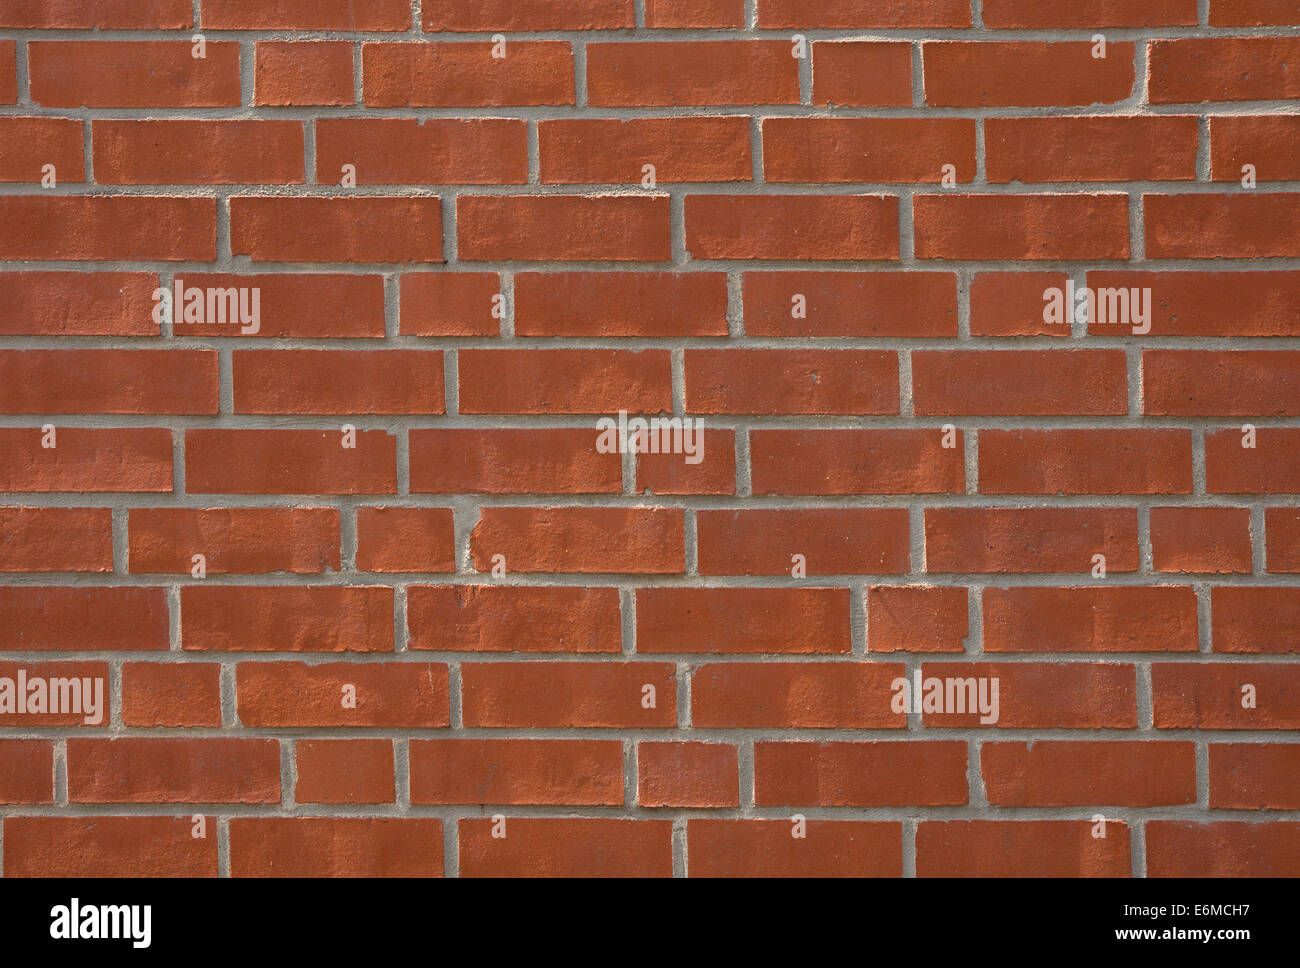 Bricks wall texture for designers and 3d artists - Stock Image